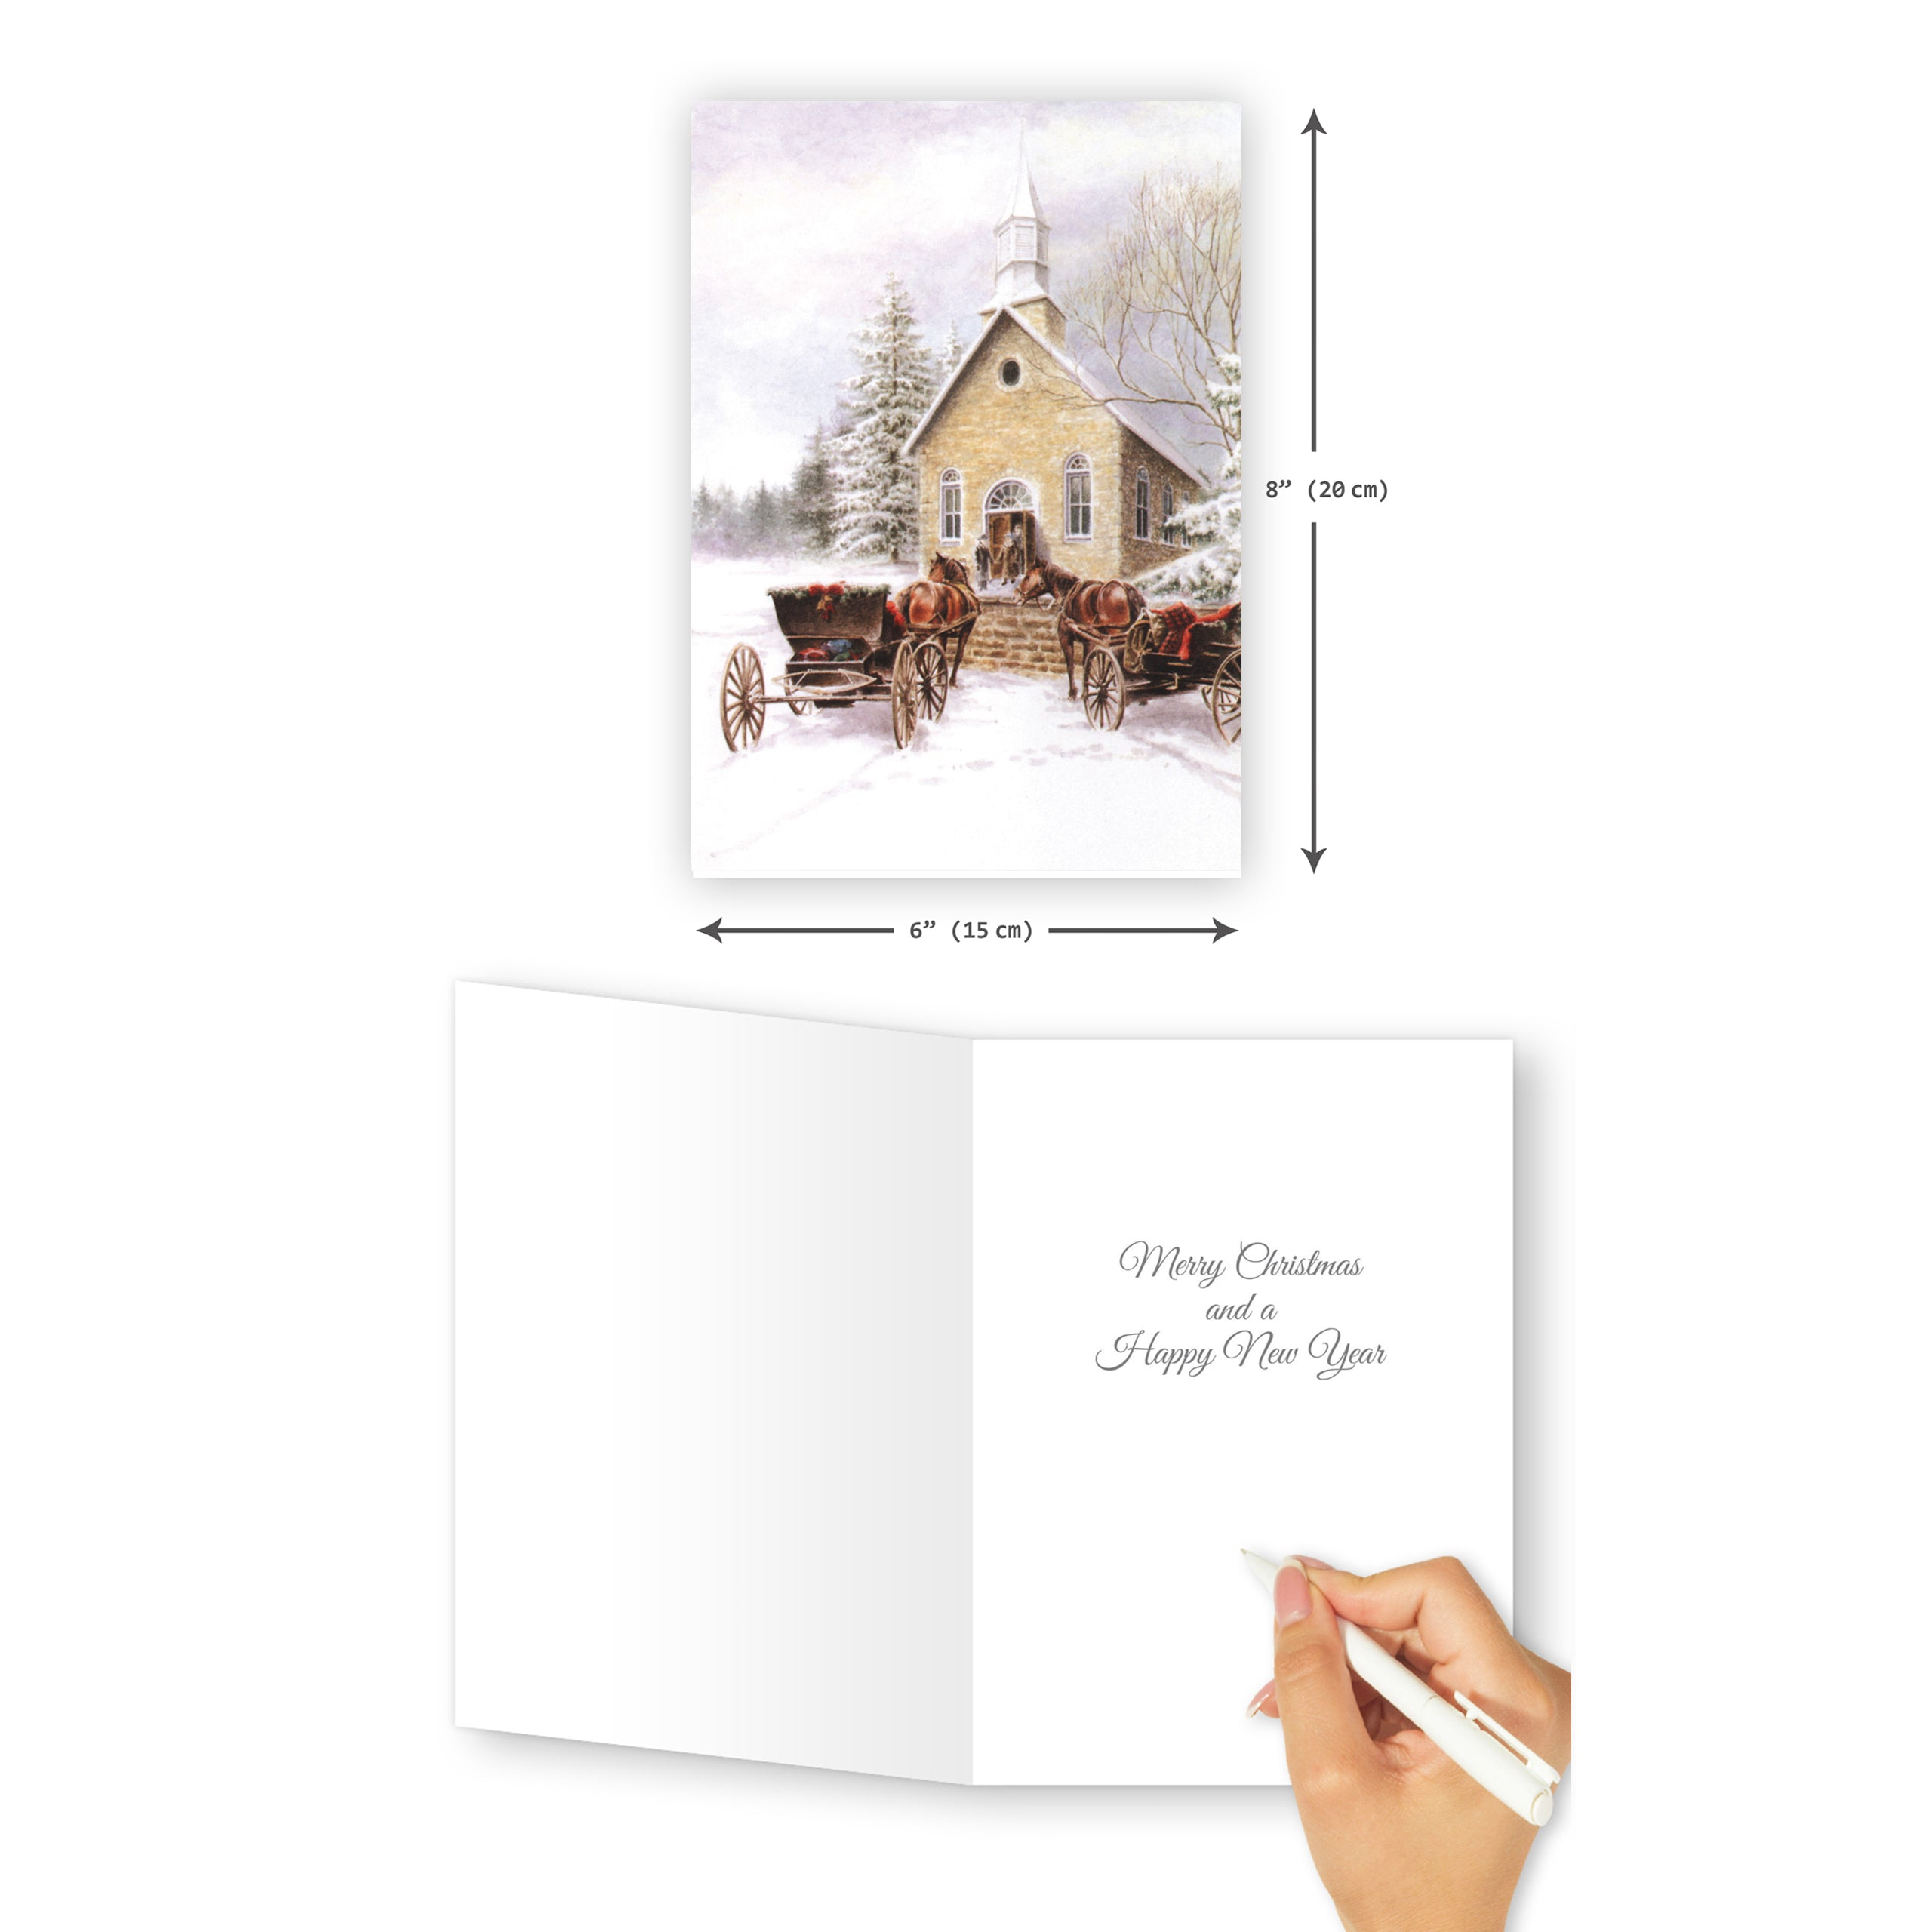 'Small Town Christmas' Merry Christmas Card - Northern Cards size with inside